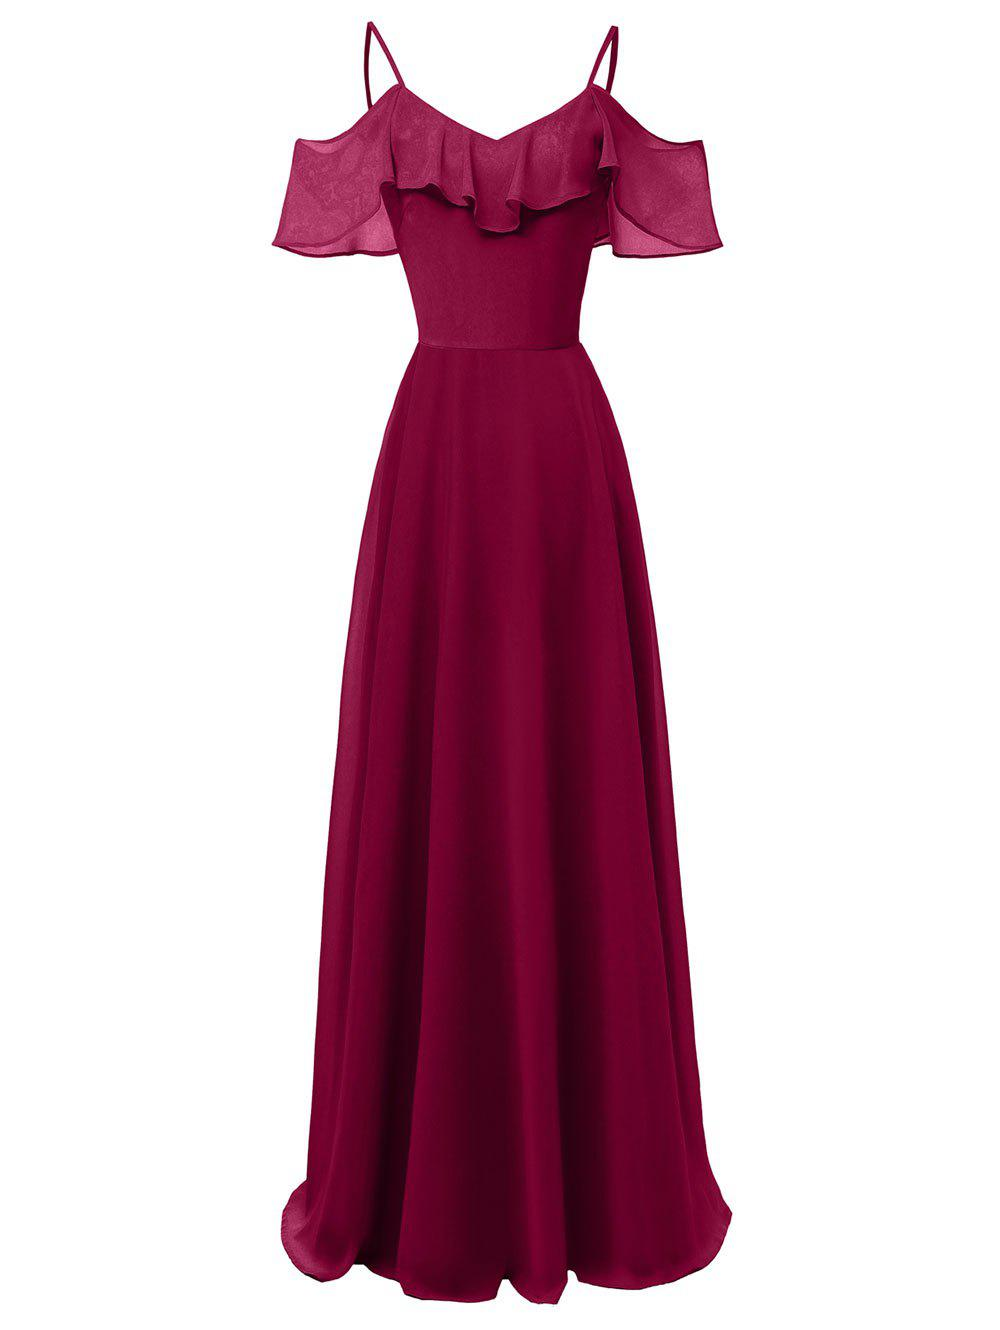 Unique Ruffle Overlay Cold Shoulder Evening Dress